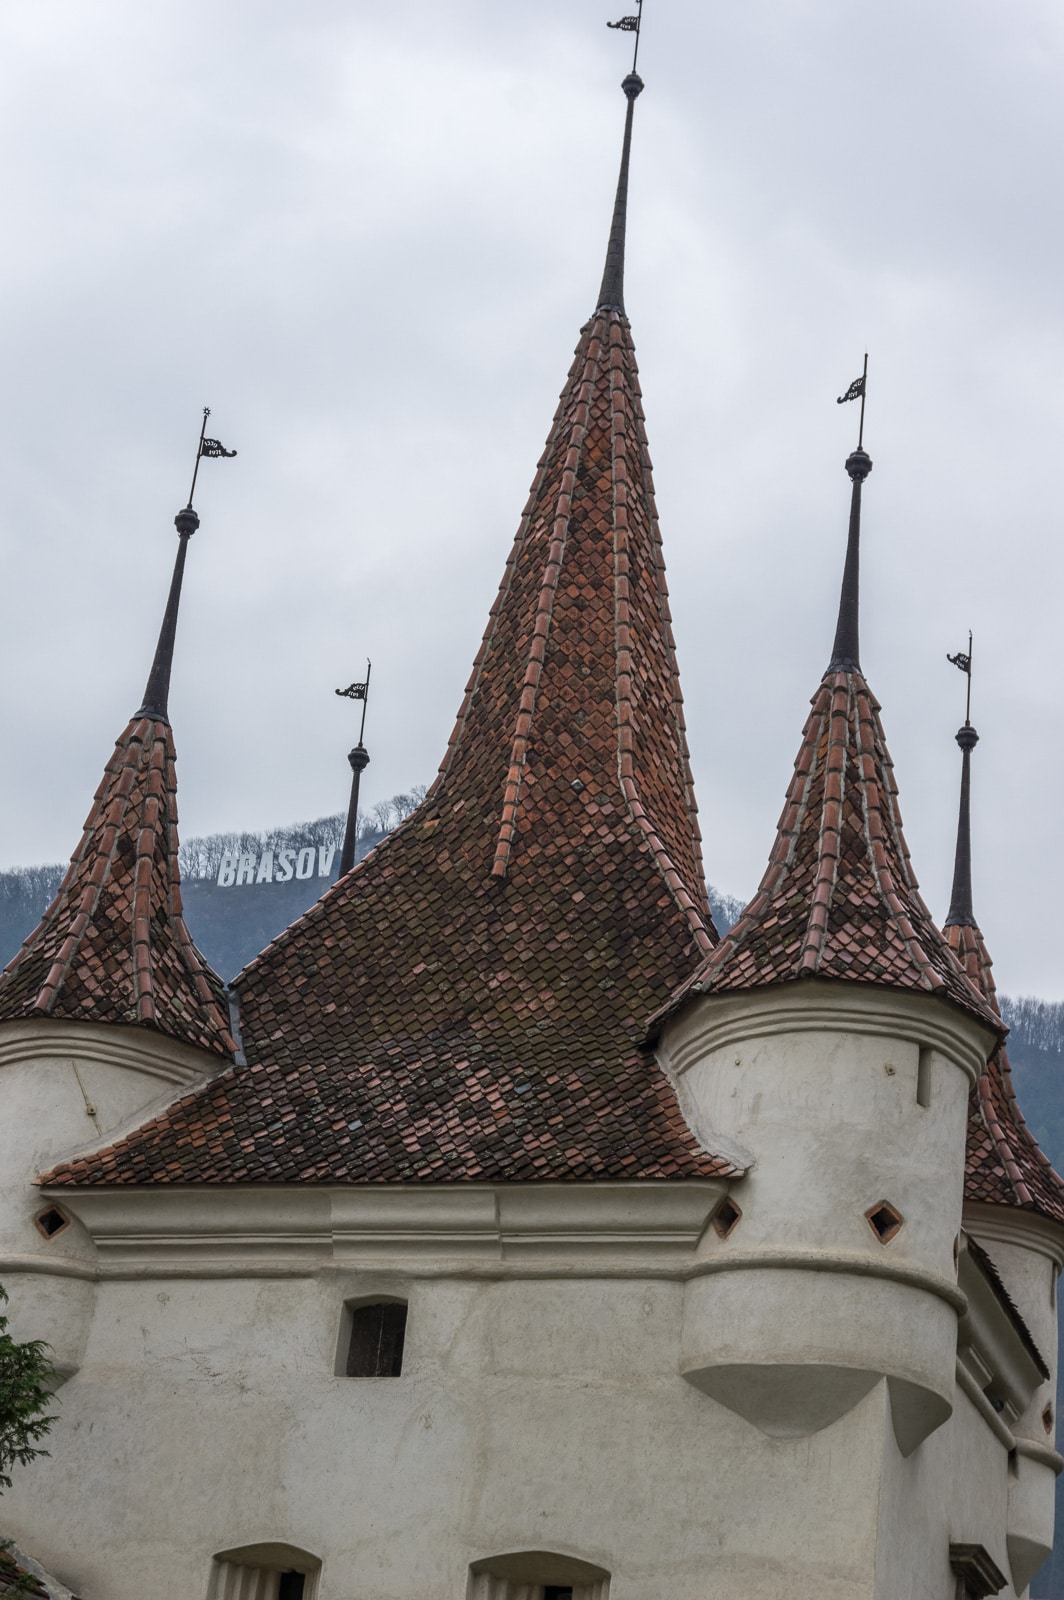 Brasov is one of the seven walled citadels of Transylvania. We walk the streets of the old city learning its history and then, we visit the mighty castles of Bran and Rasnov.